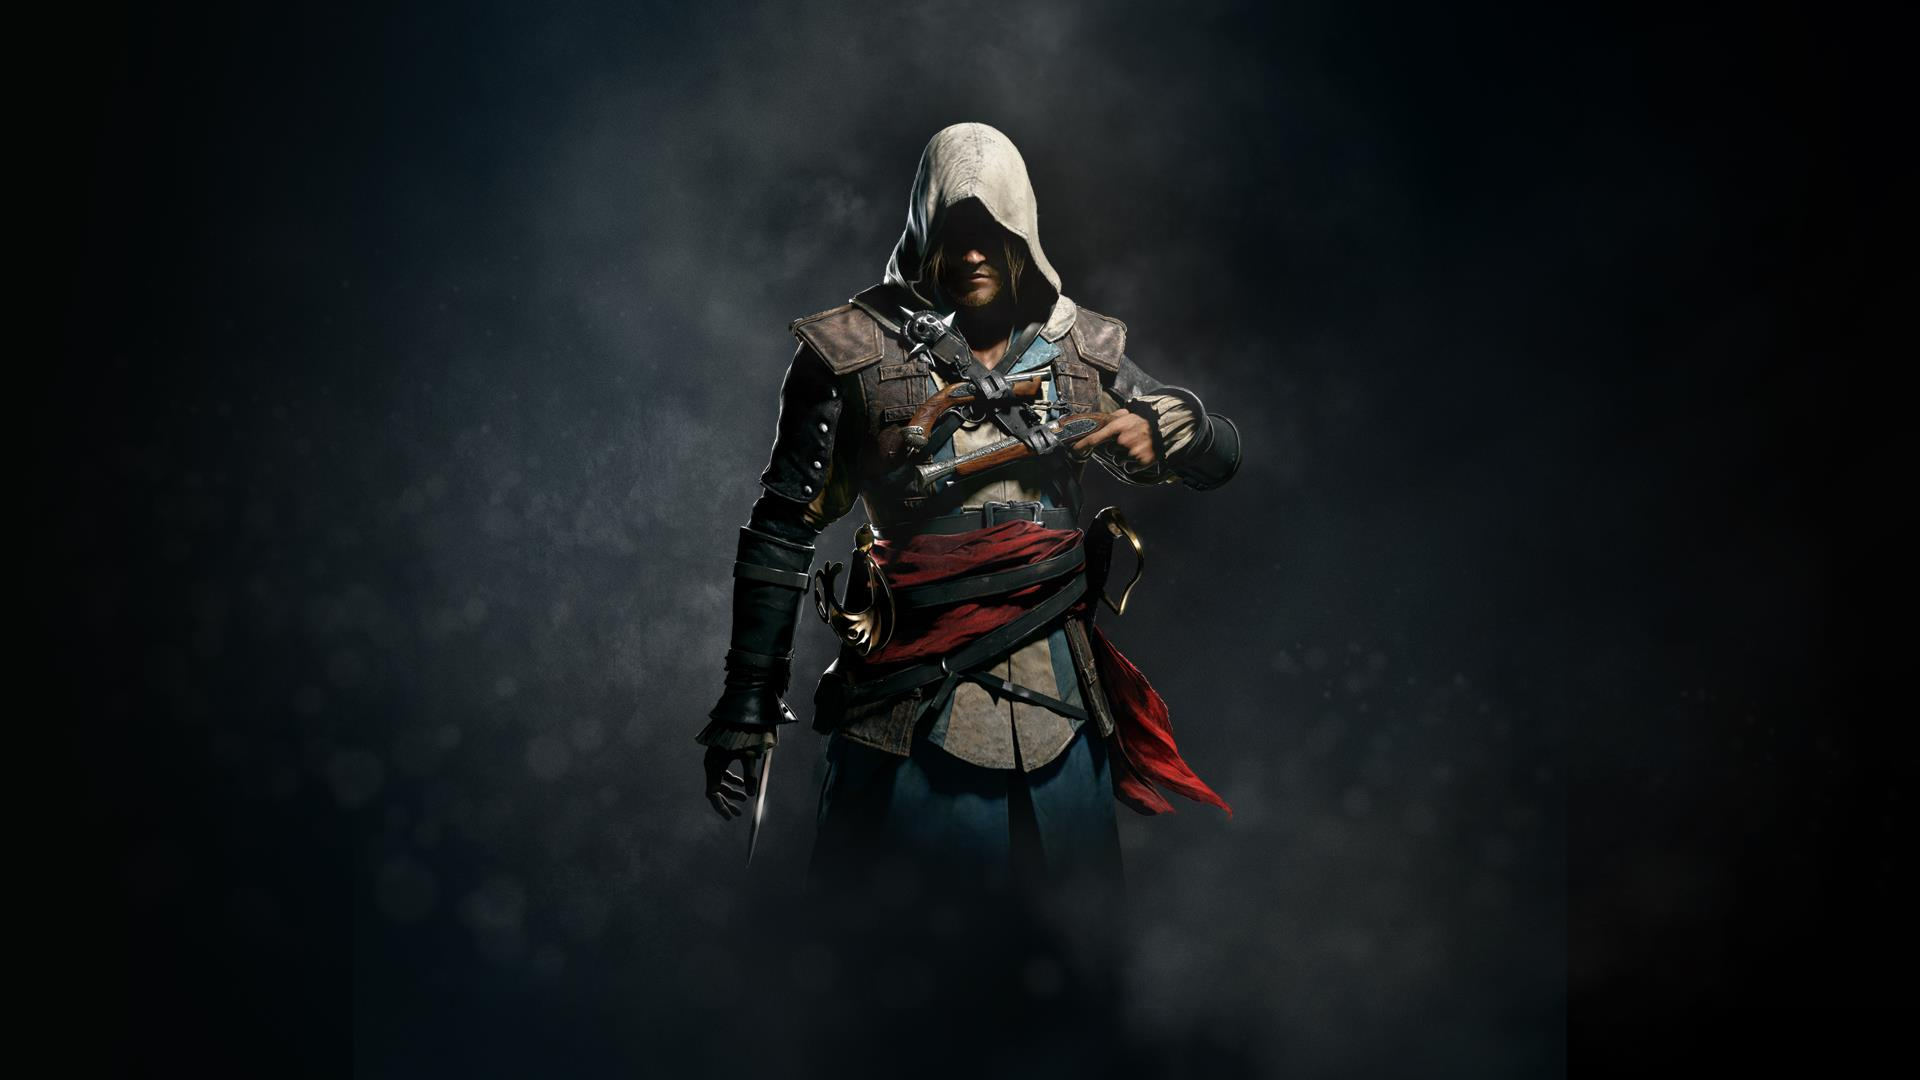 Lab Technician in Assassin's Creed IV: Black Flag